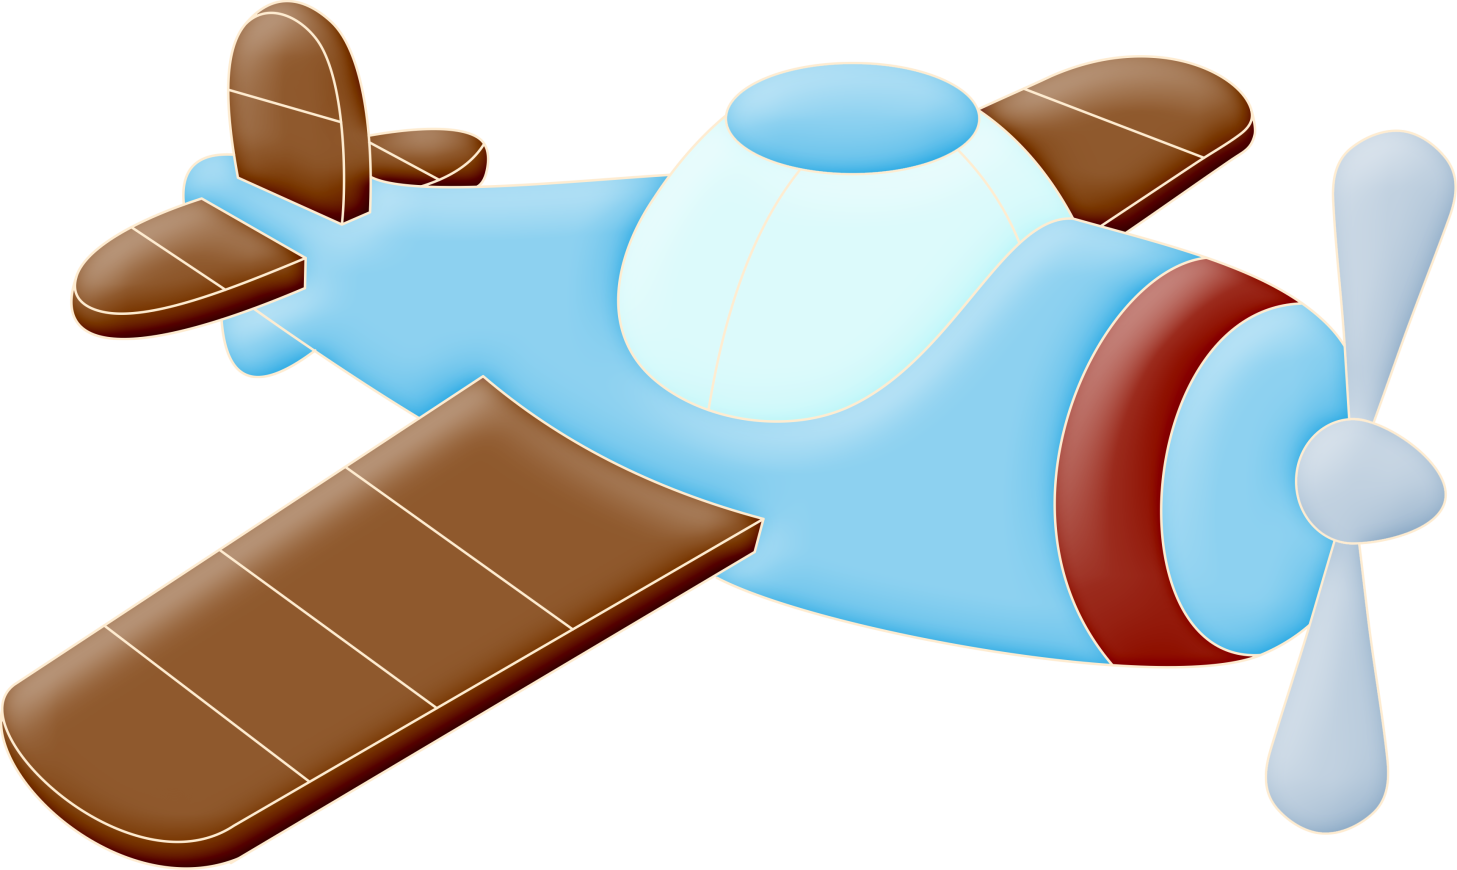 Sgblogosfera mar a jos. Pilot clipart antique airplane